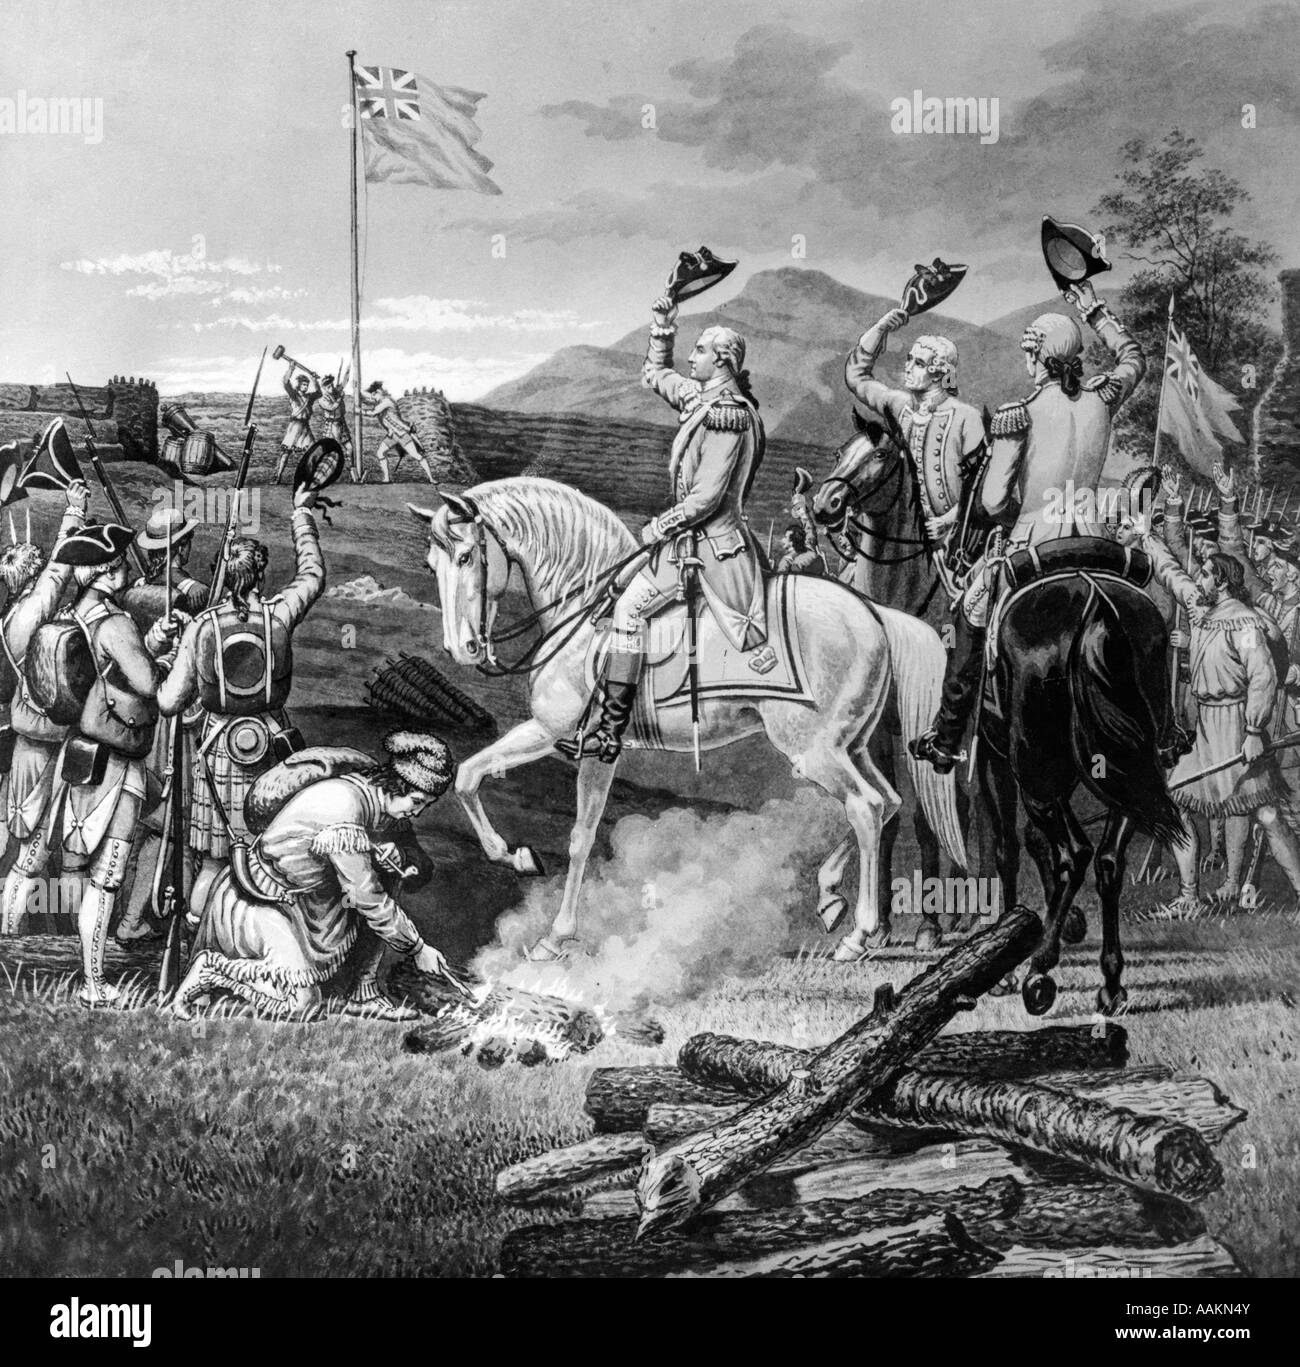 essays about the french and indian war A short history of the french and indian war a brief narrative of this war in order to put contemporary maps and prints into perspective.